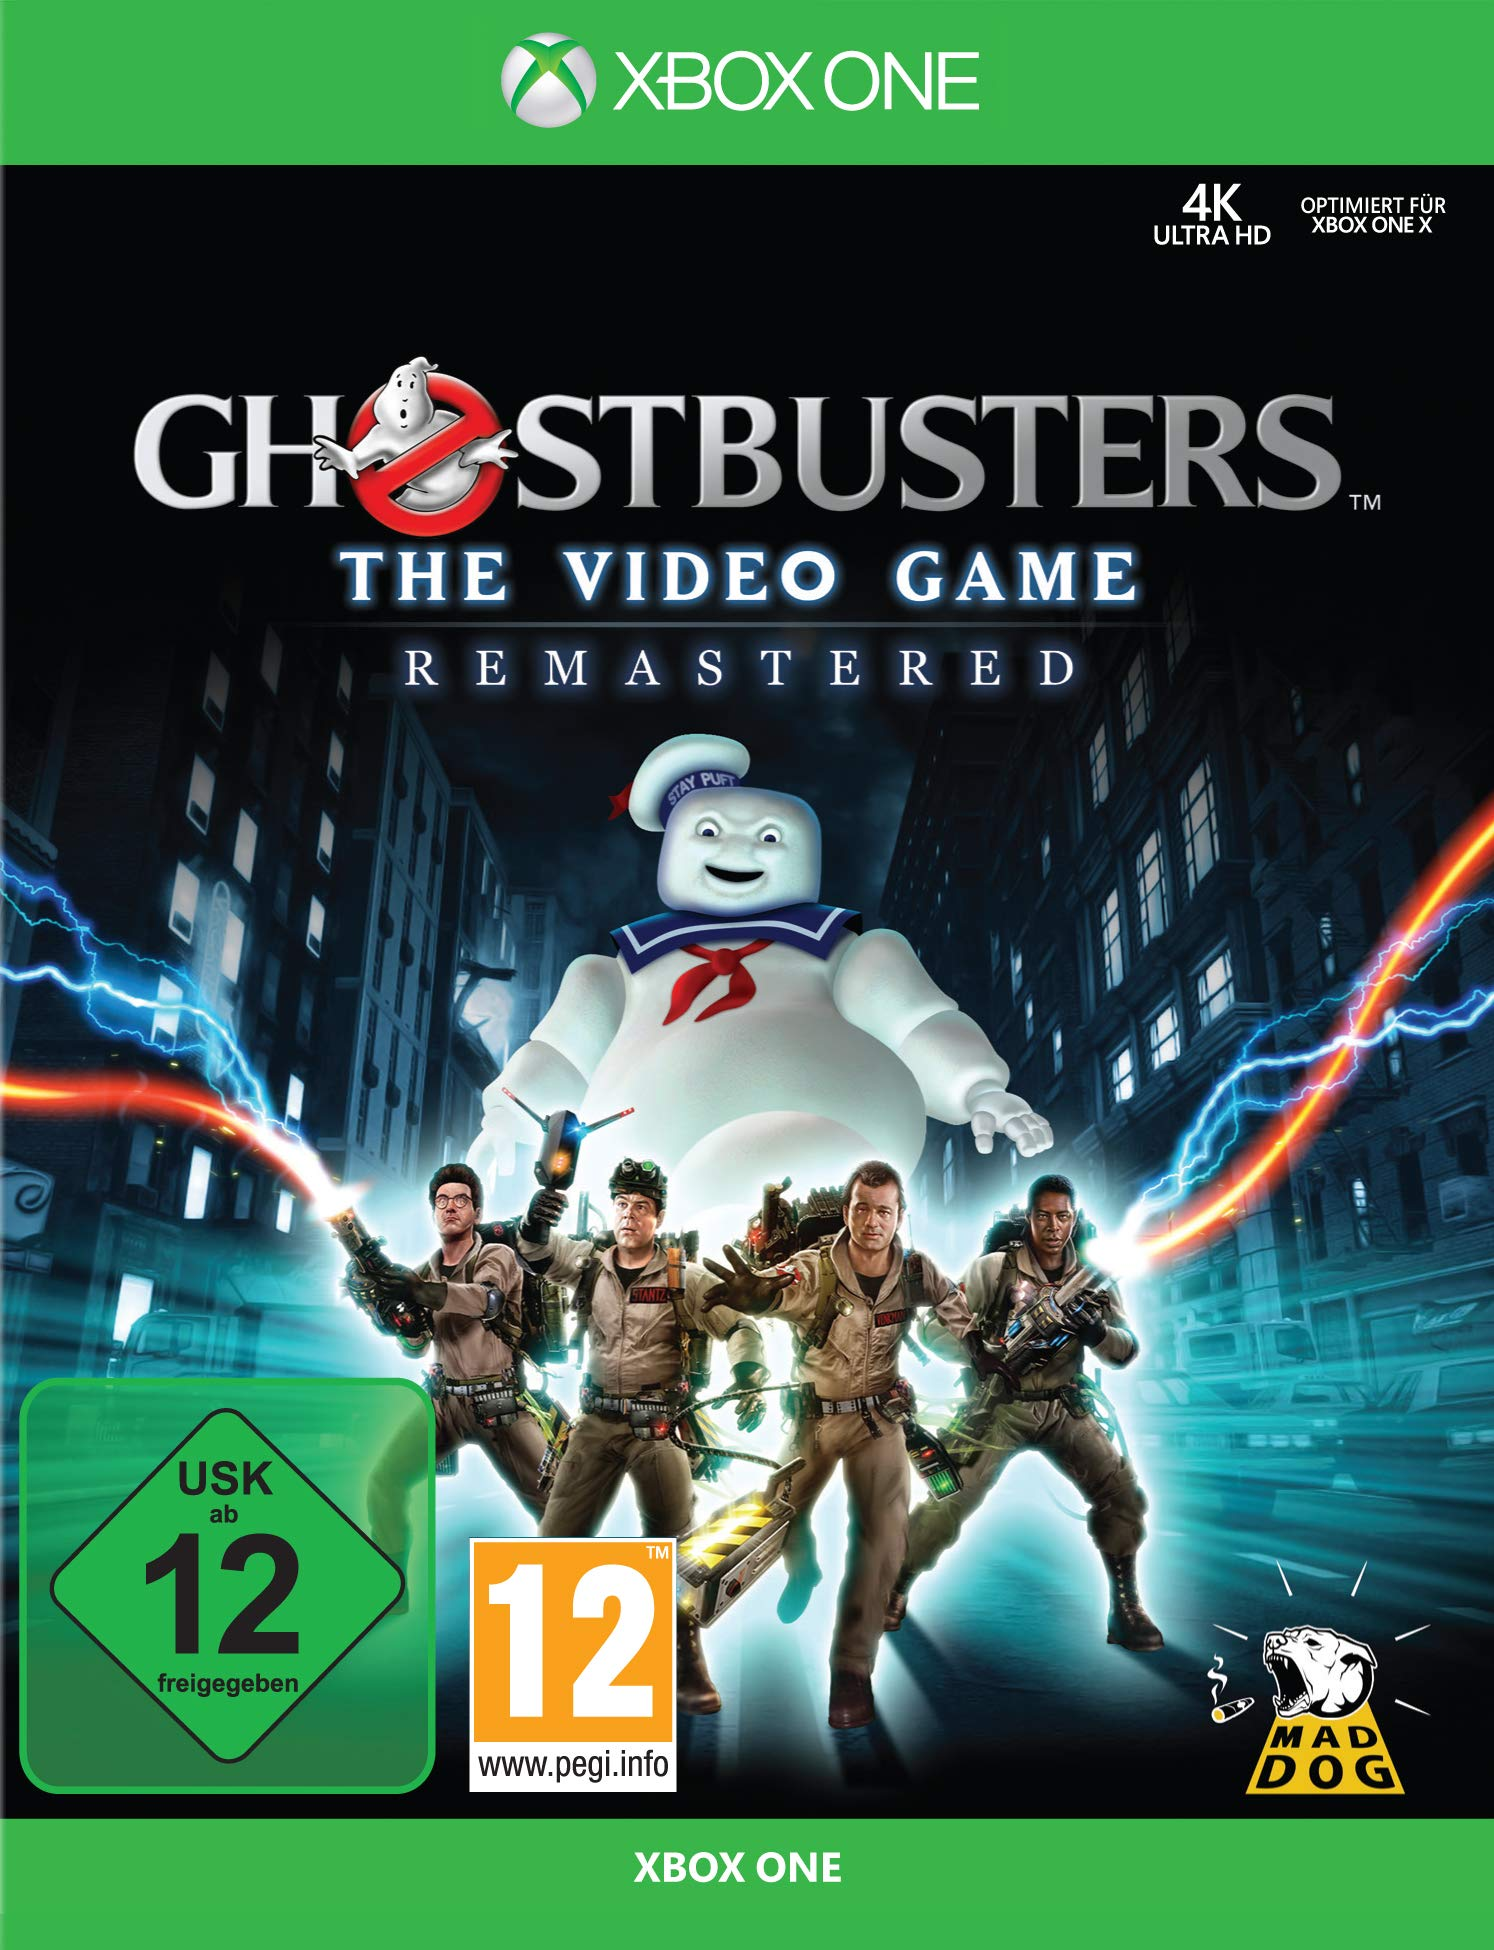 Ghostbusters The Video Game Remastered [Xbox One] [Importacion Alemania]: Amazon.es: Videojuegos